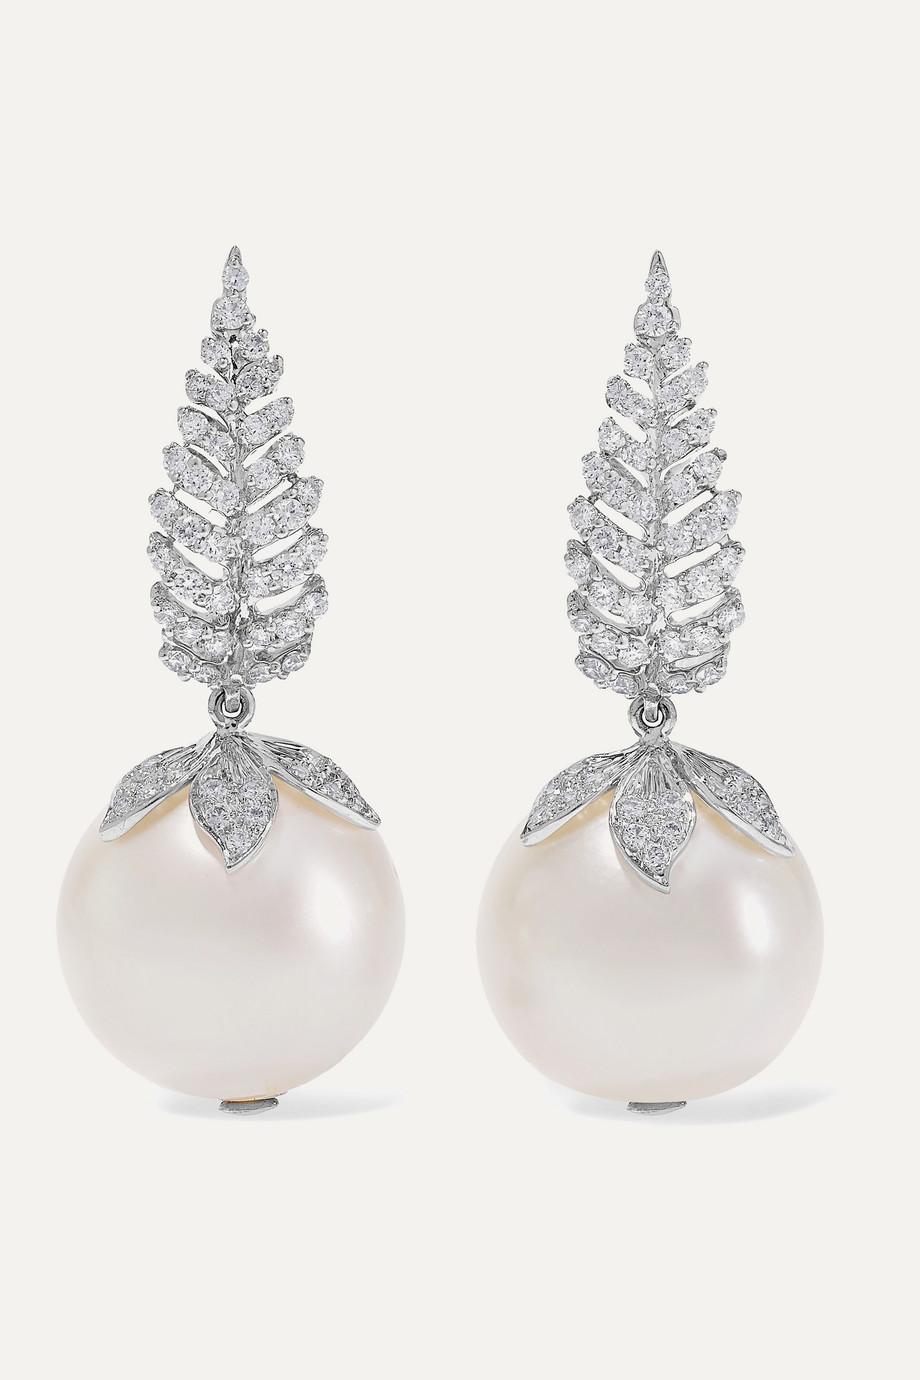 Bina Goenka 18-karat white gold, pearl and diamond earrings